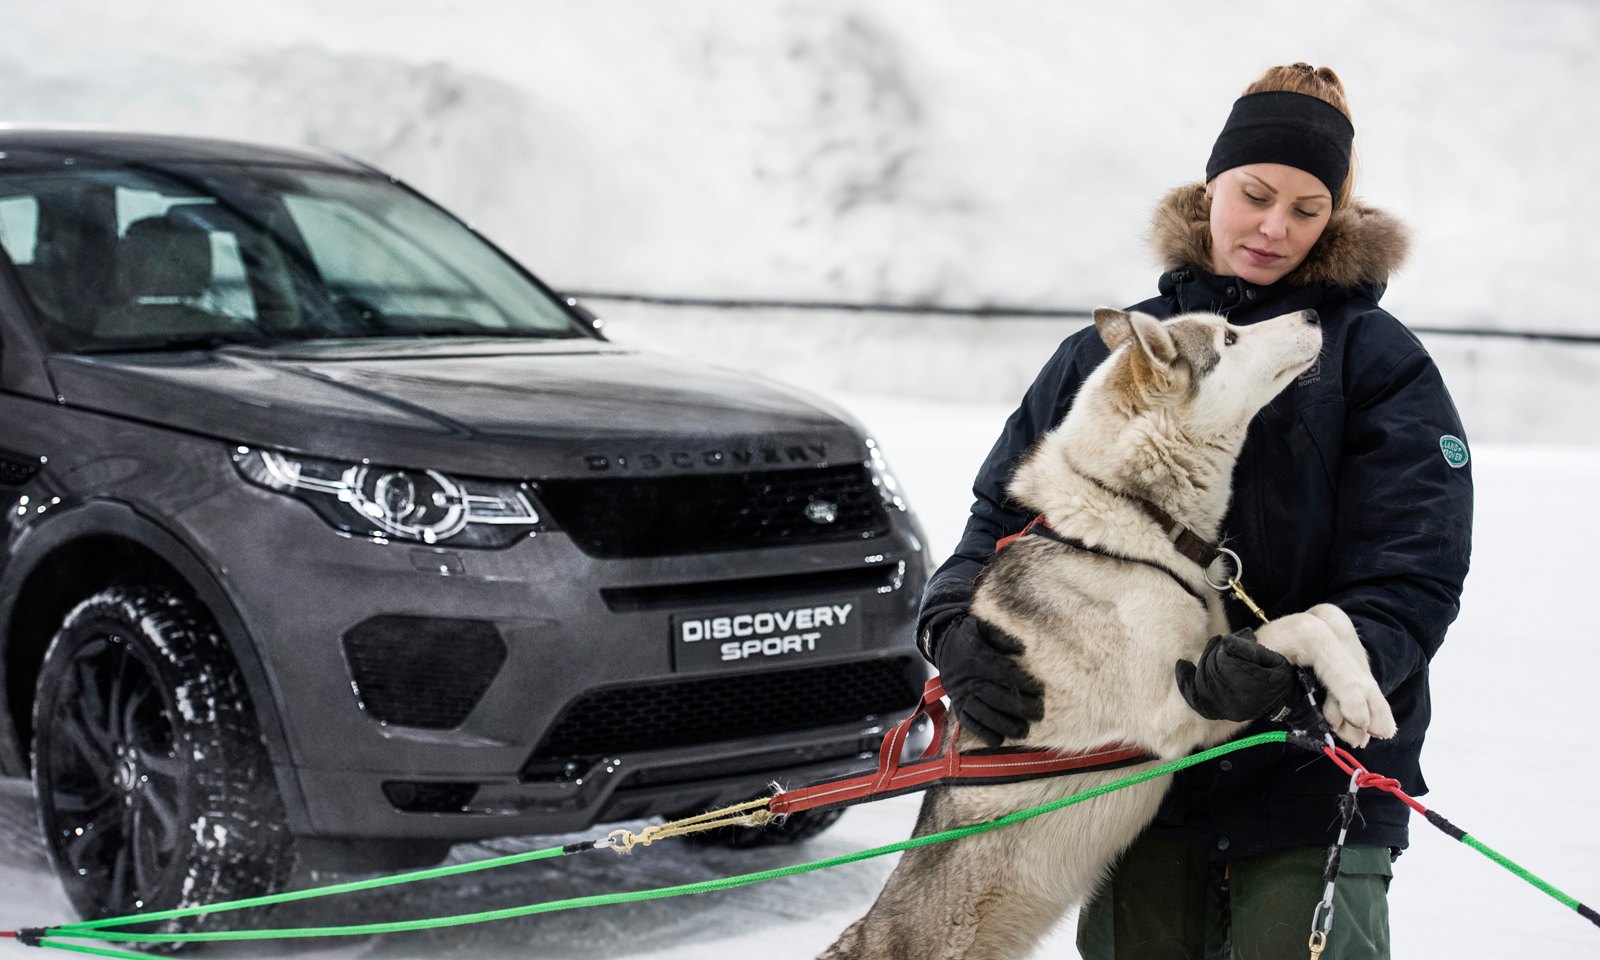 Discovery Sport takes on dog sled team in unique race at Vesileppis Ski Tunnel in Finland